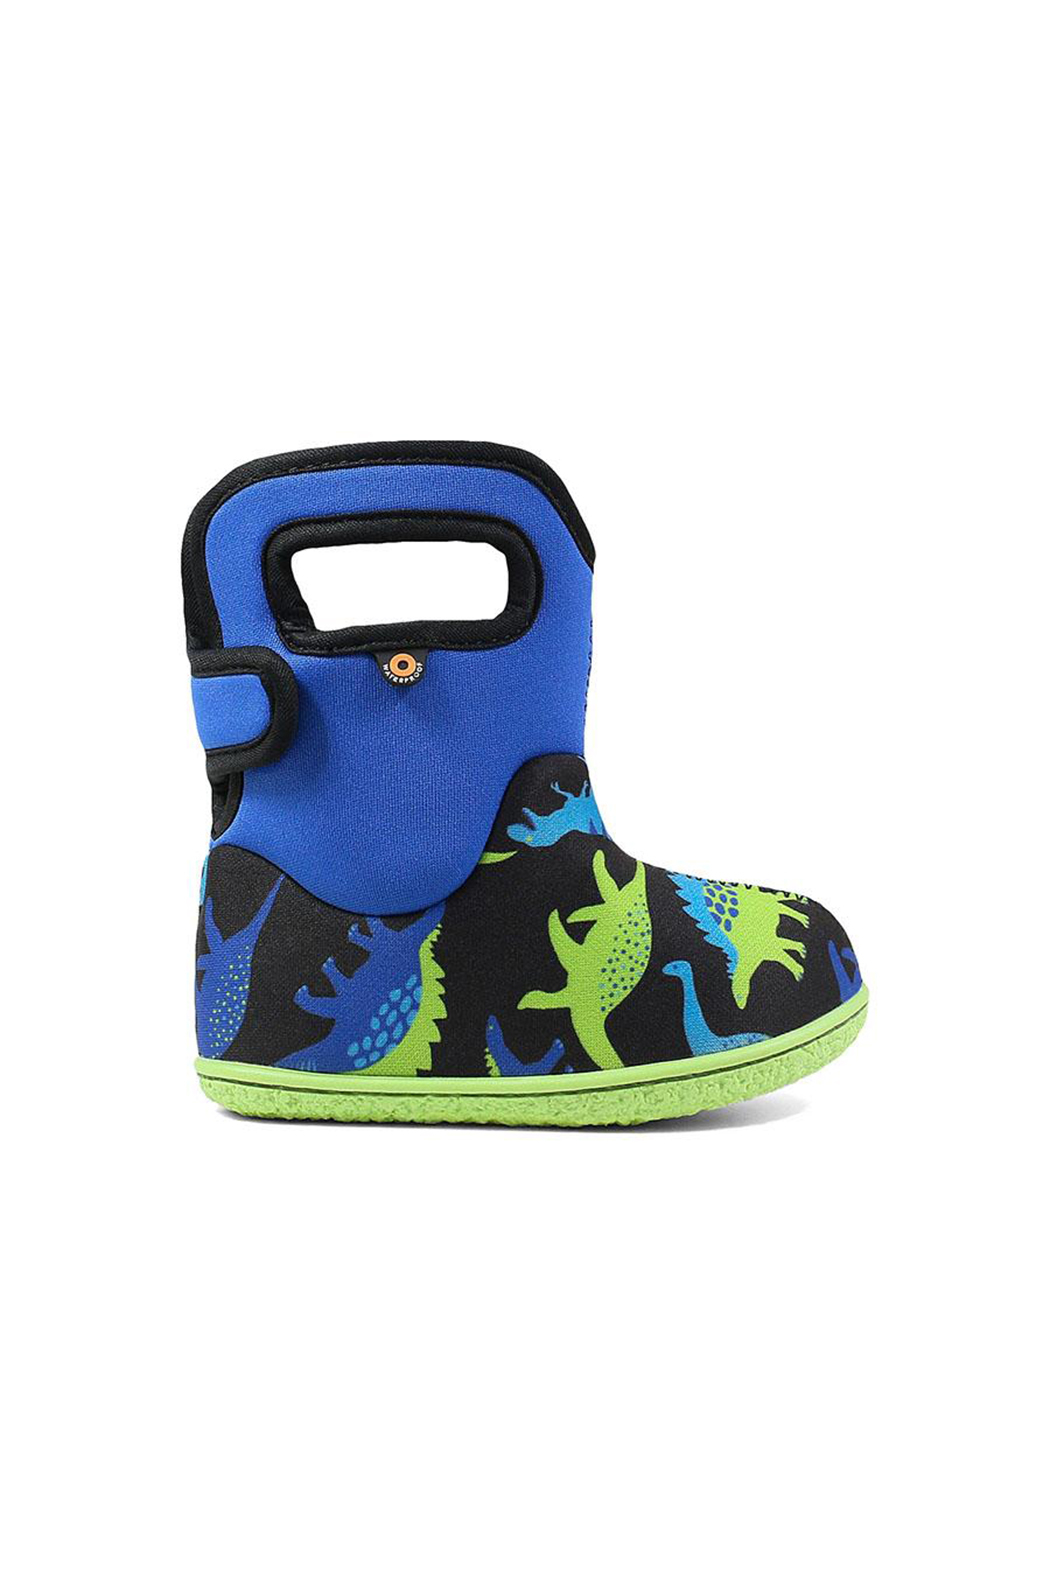 BOGS Baby Bogs Dino Waterproof Boots - Main Image